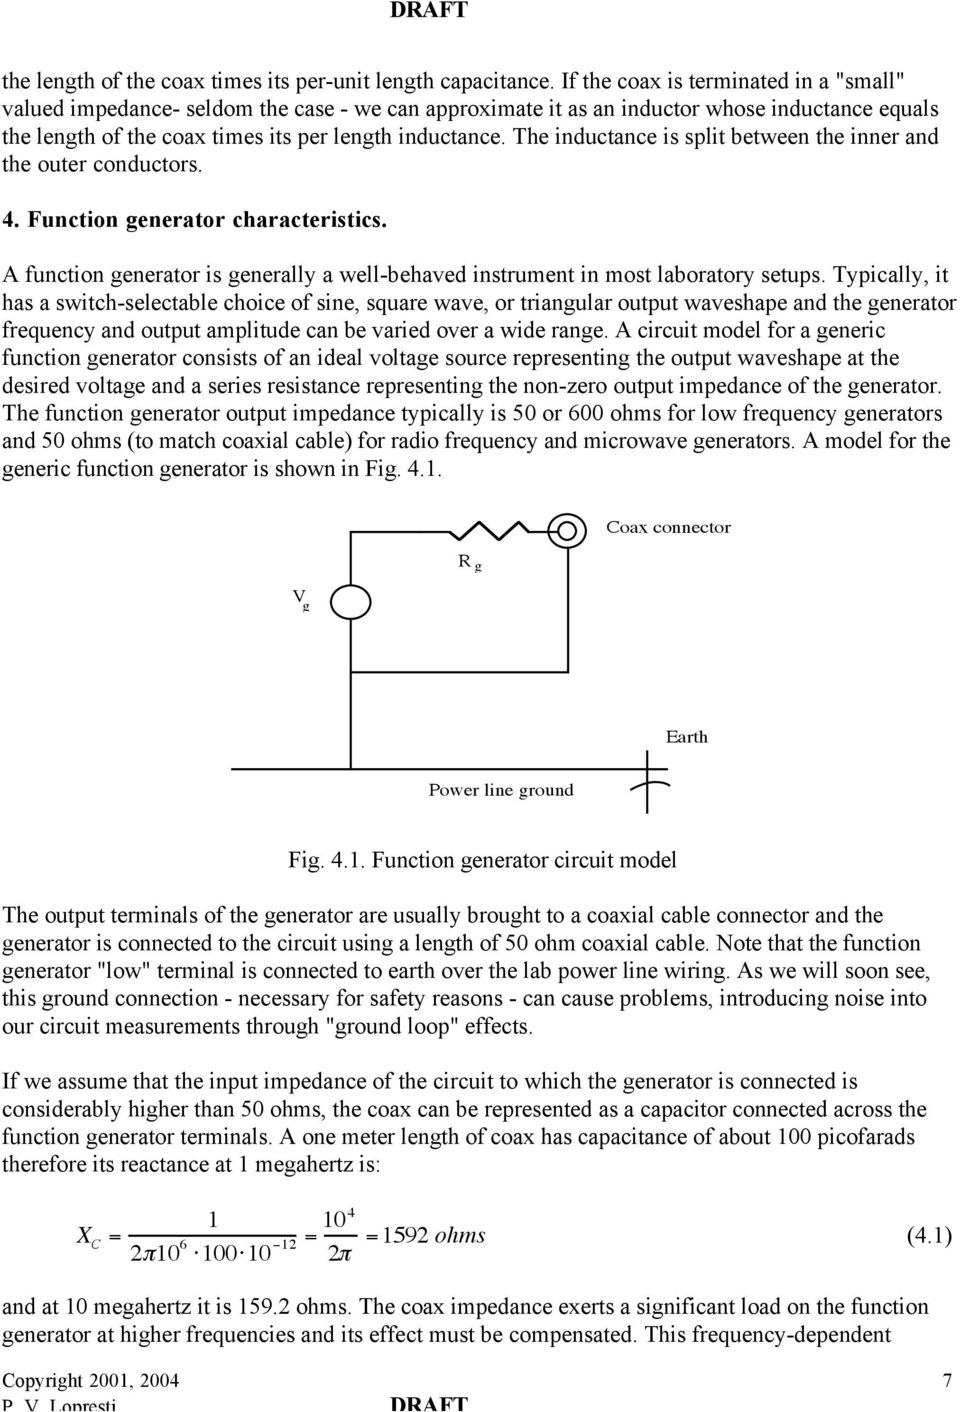 Draft University Of Pennsylvania Moore School Electrical Frequencydependent Circuits The Inductance Is Split Between Inner And Outer Conductors 4 Function Generator